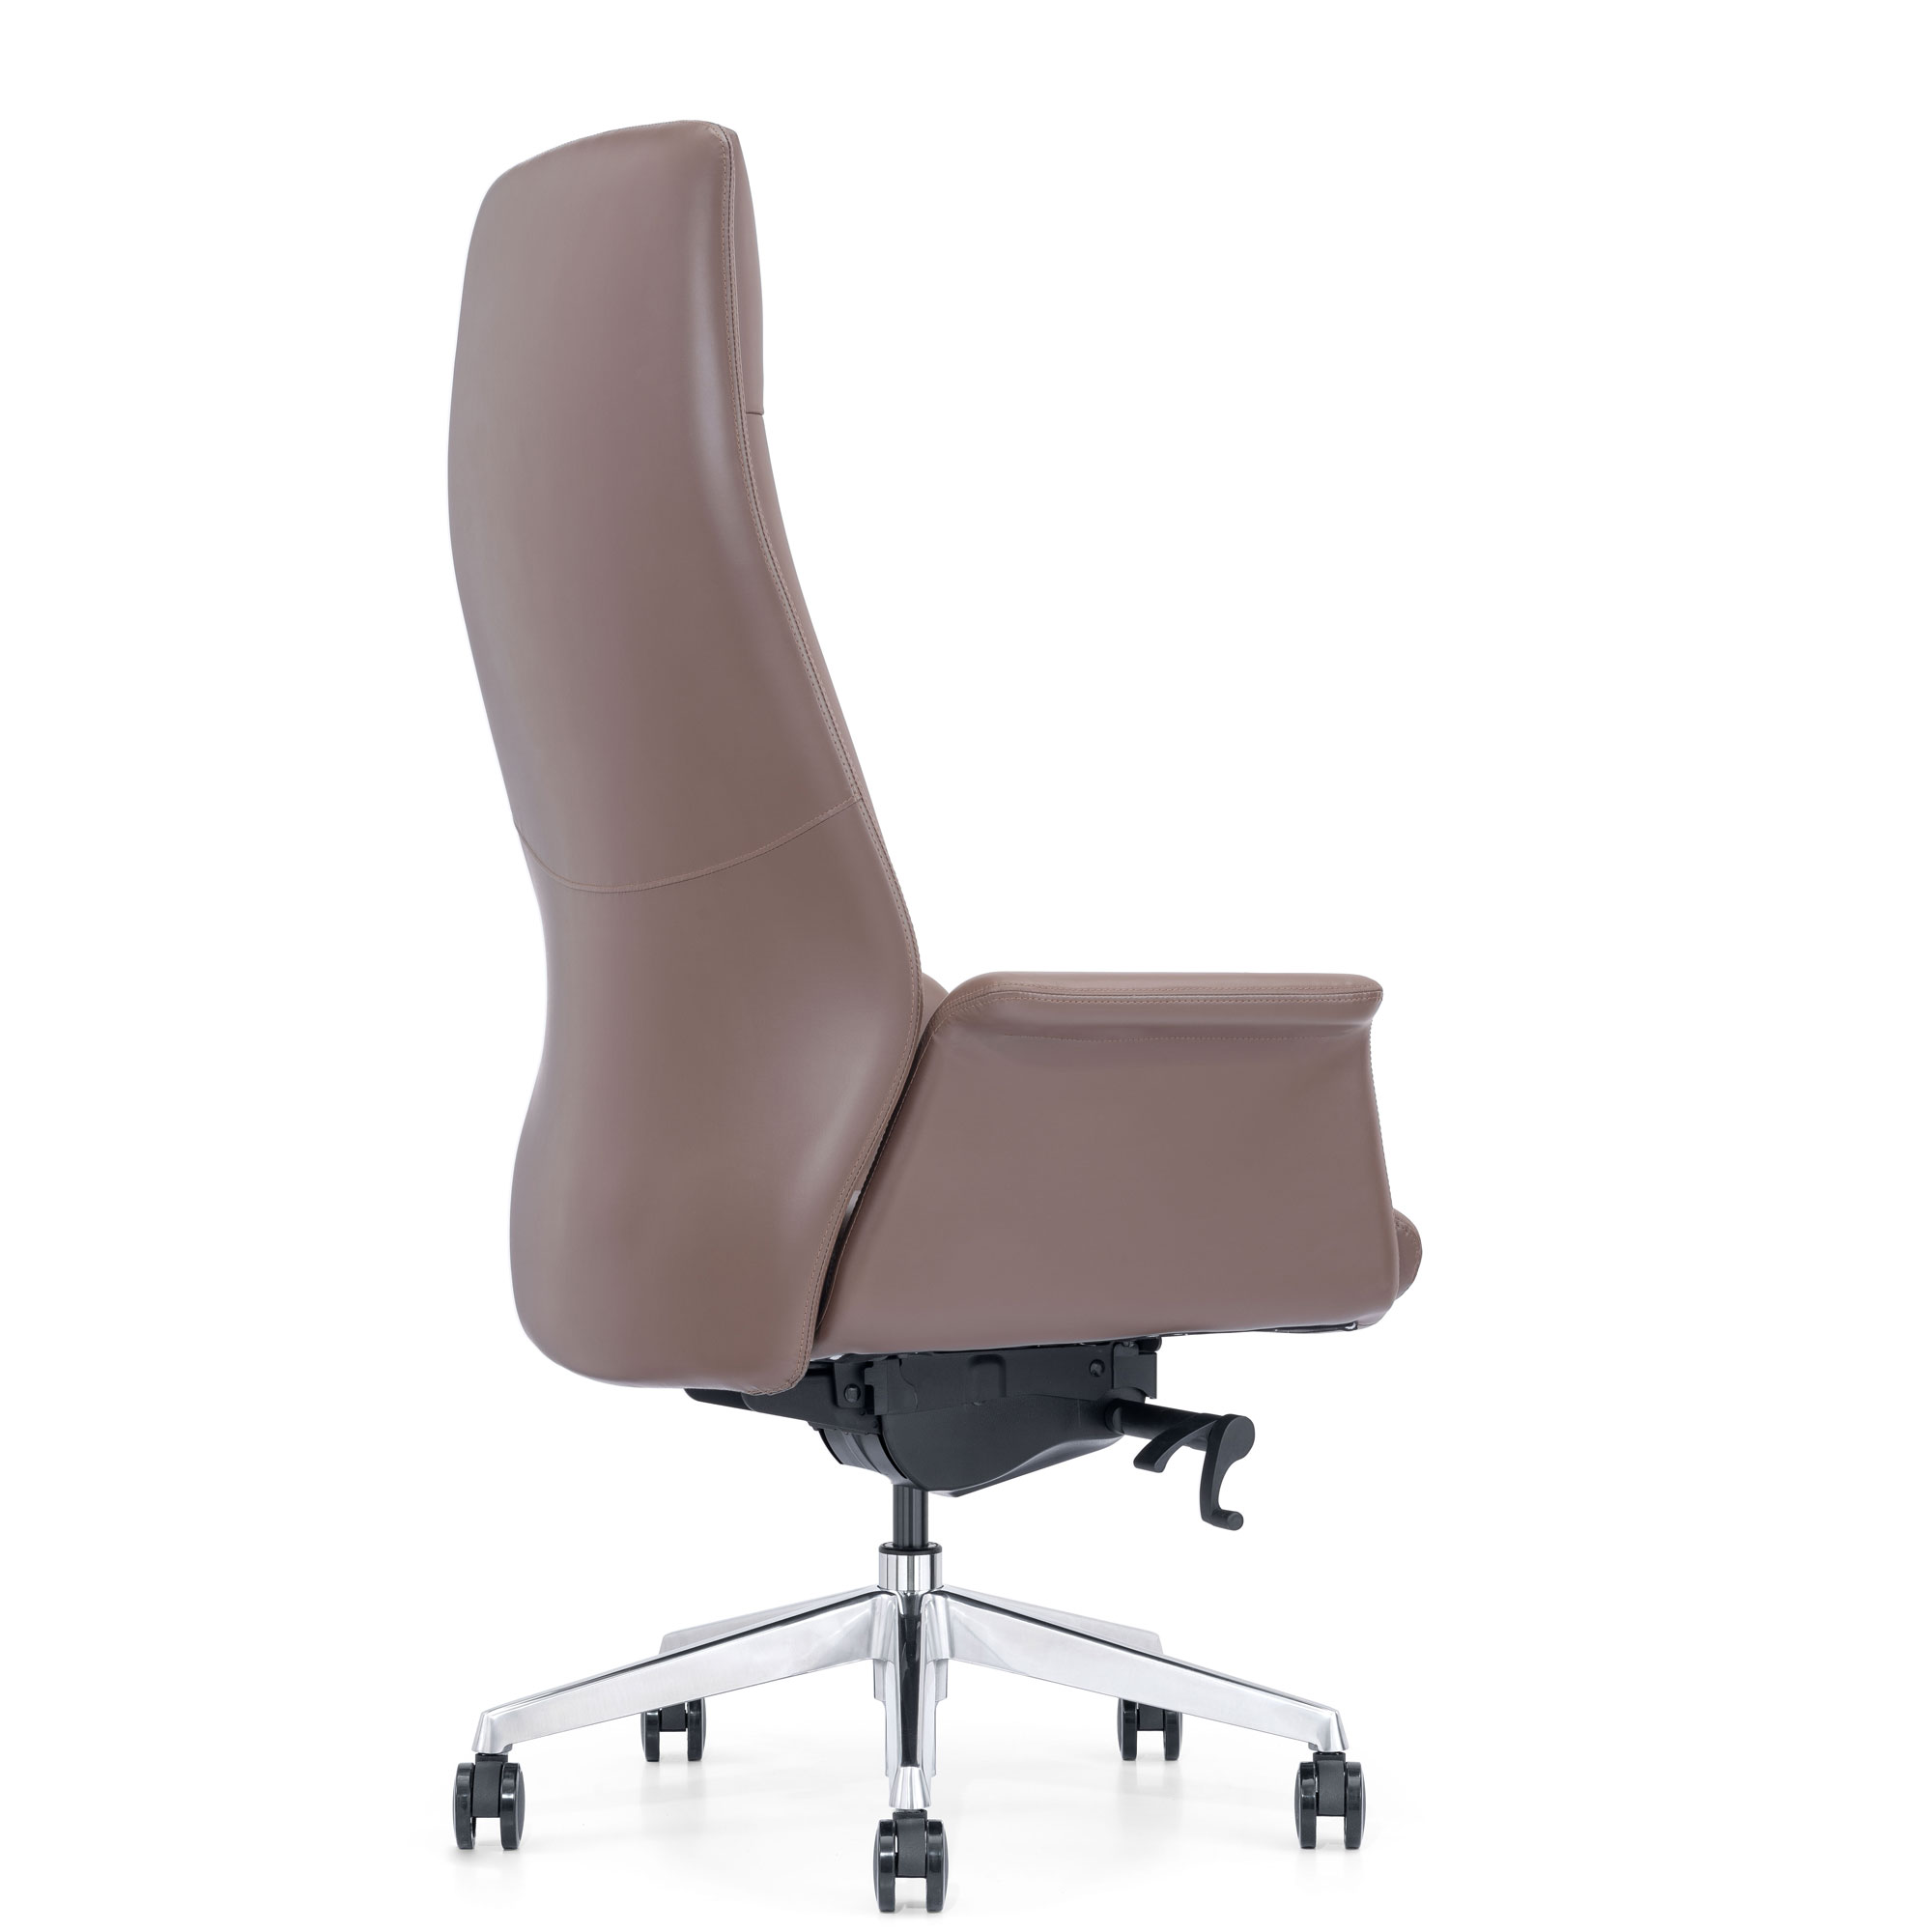 Brown Leather Chair, Black Angle